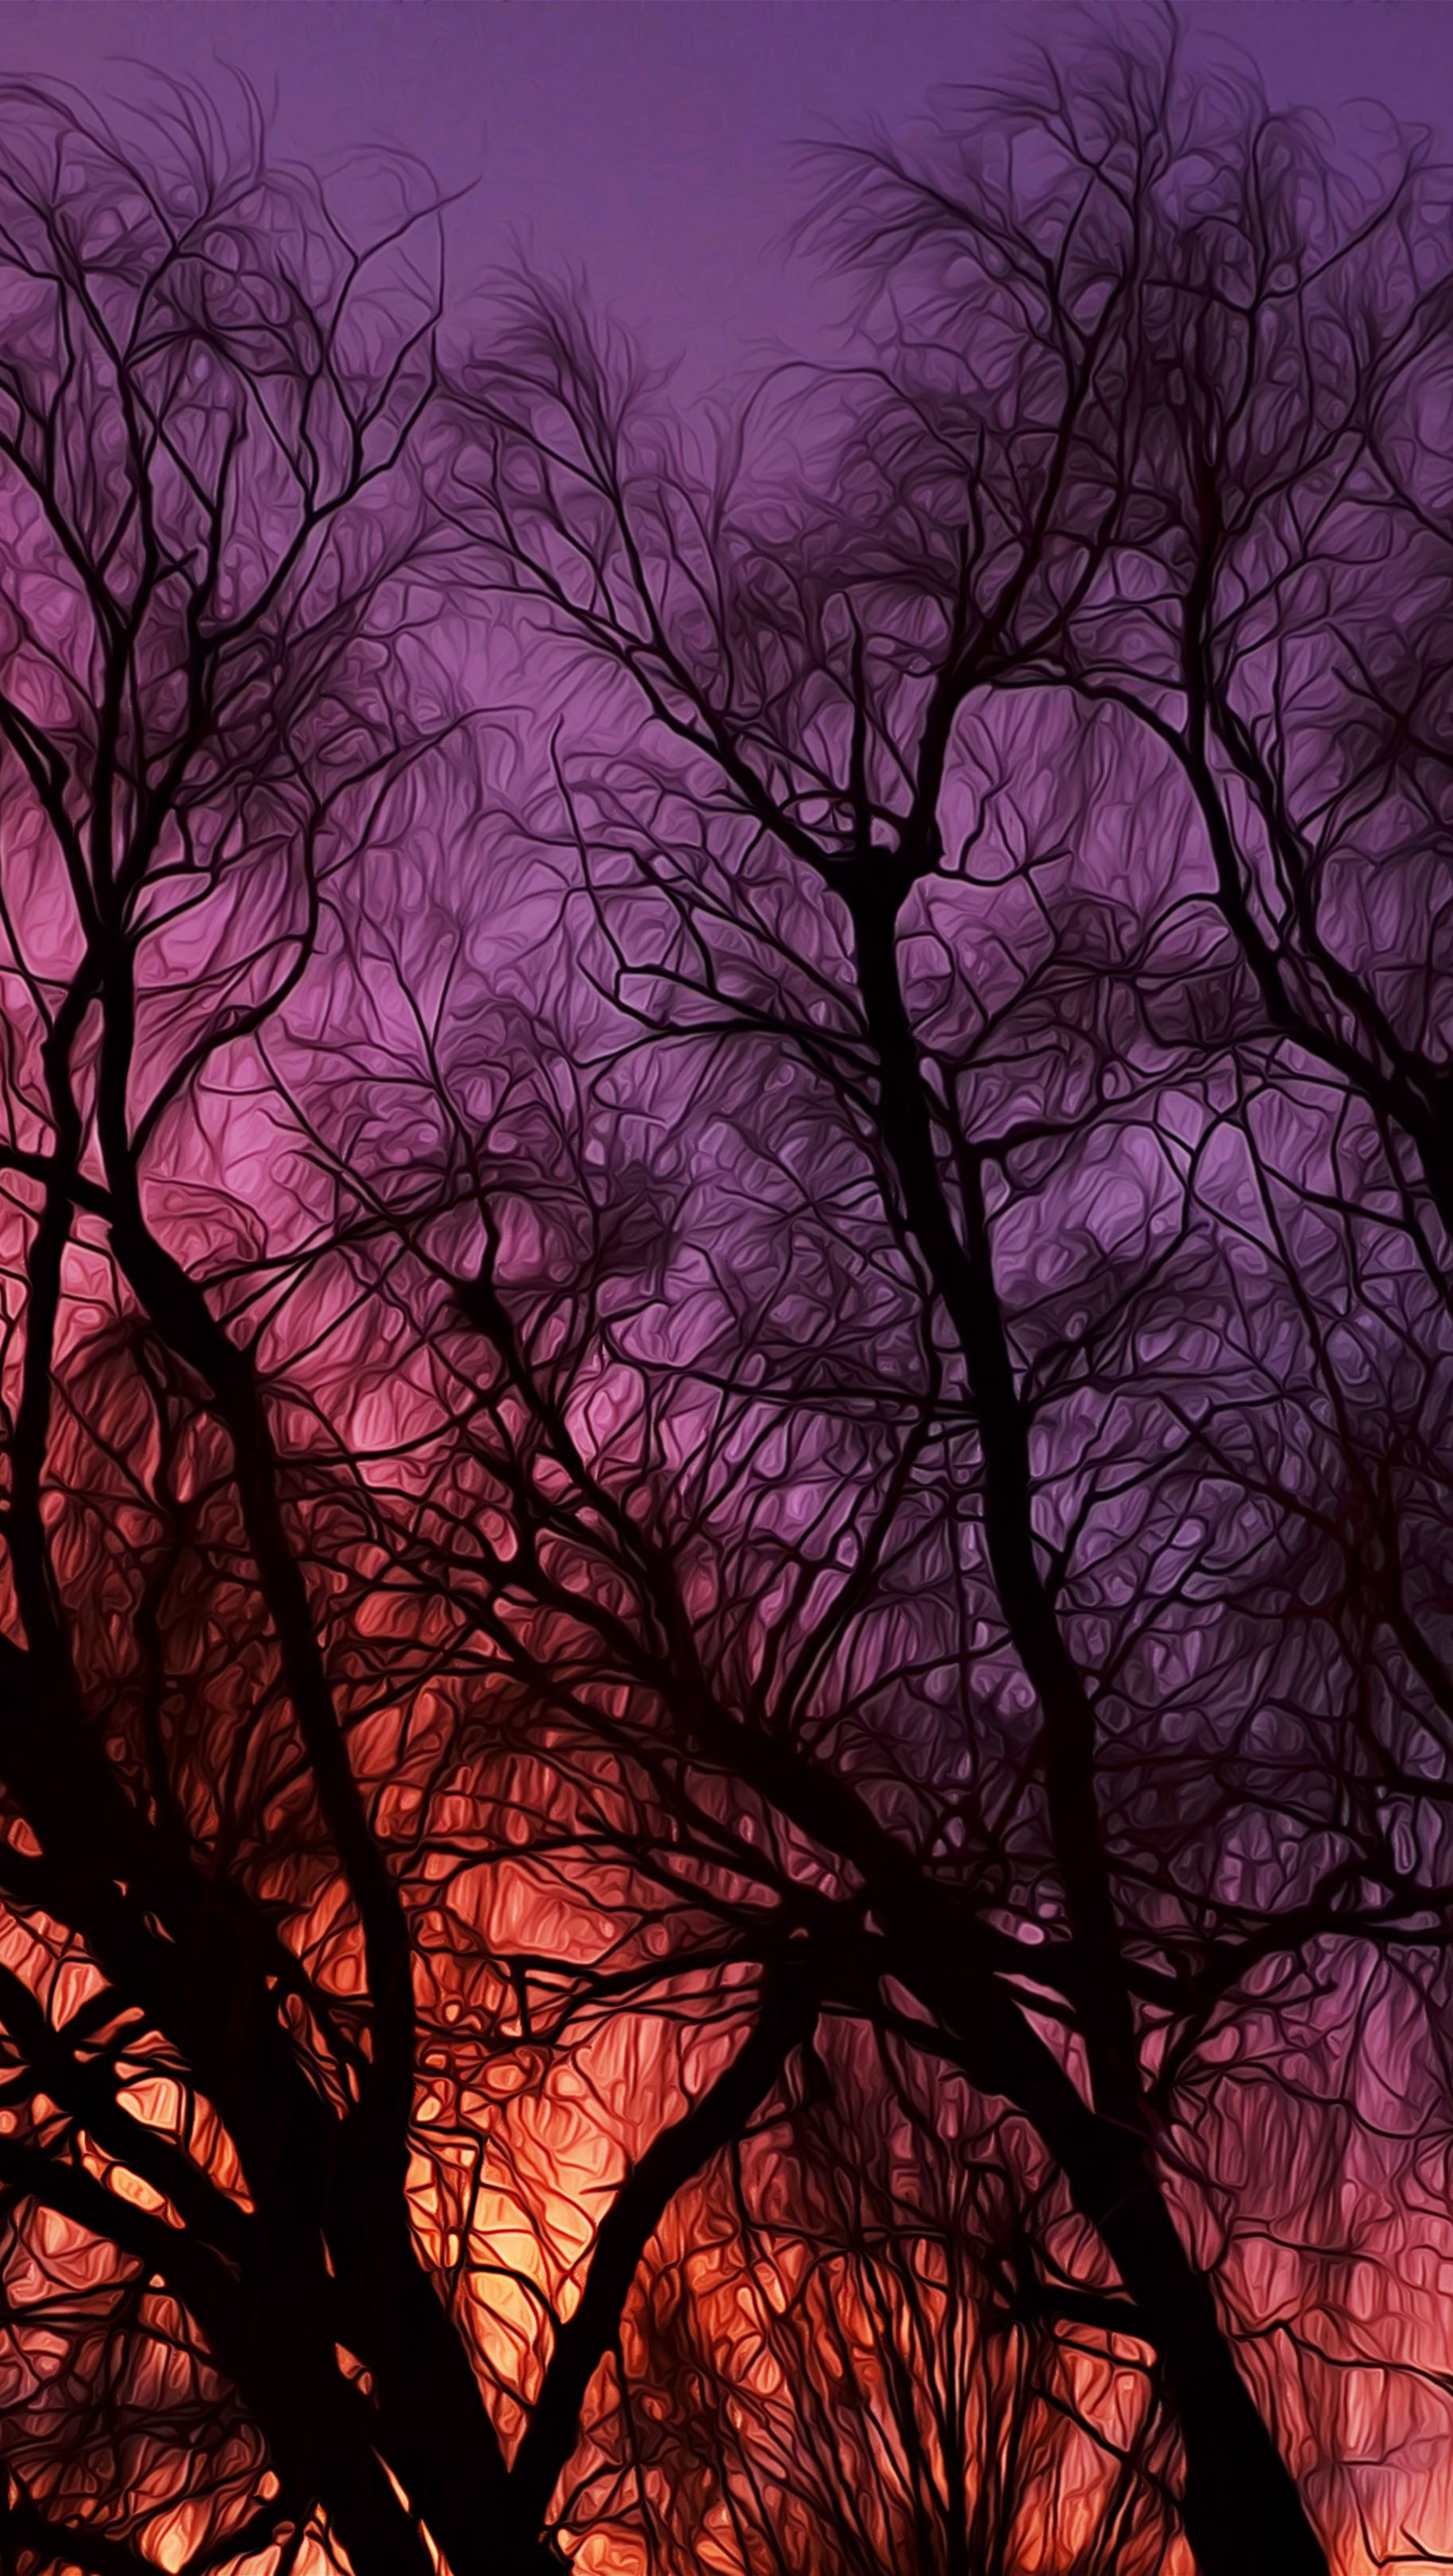 Wallpaper Painting of Tree Branches in the Sunset Vertical